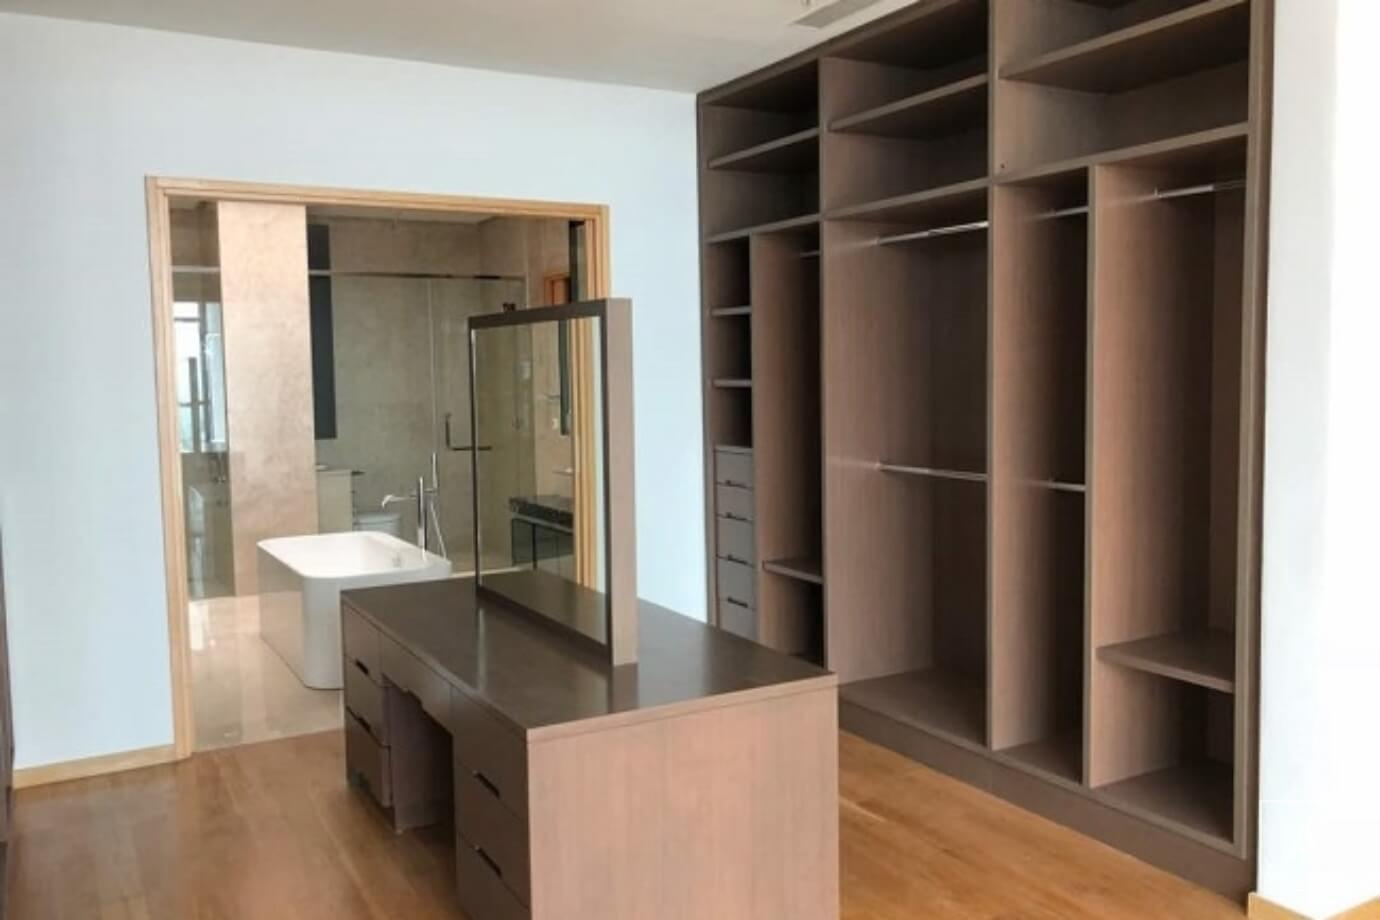 Damansara City Residency, Damansara Heights,Kuala Lumpur, 4 Bedrooms Bedrooms, ,7 BathroomsBathrooms,Condominium / Serviced Residence,For Sale,Damansara City Residency,Jalan Domanlela,1735